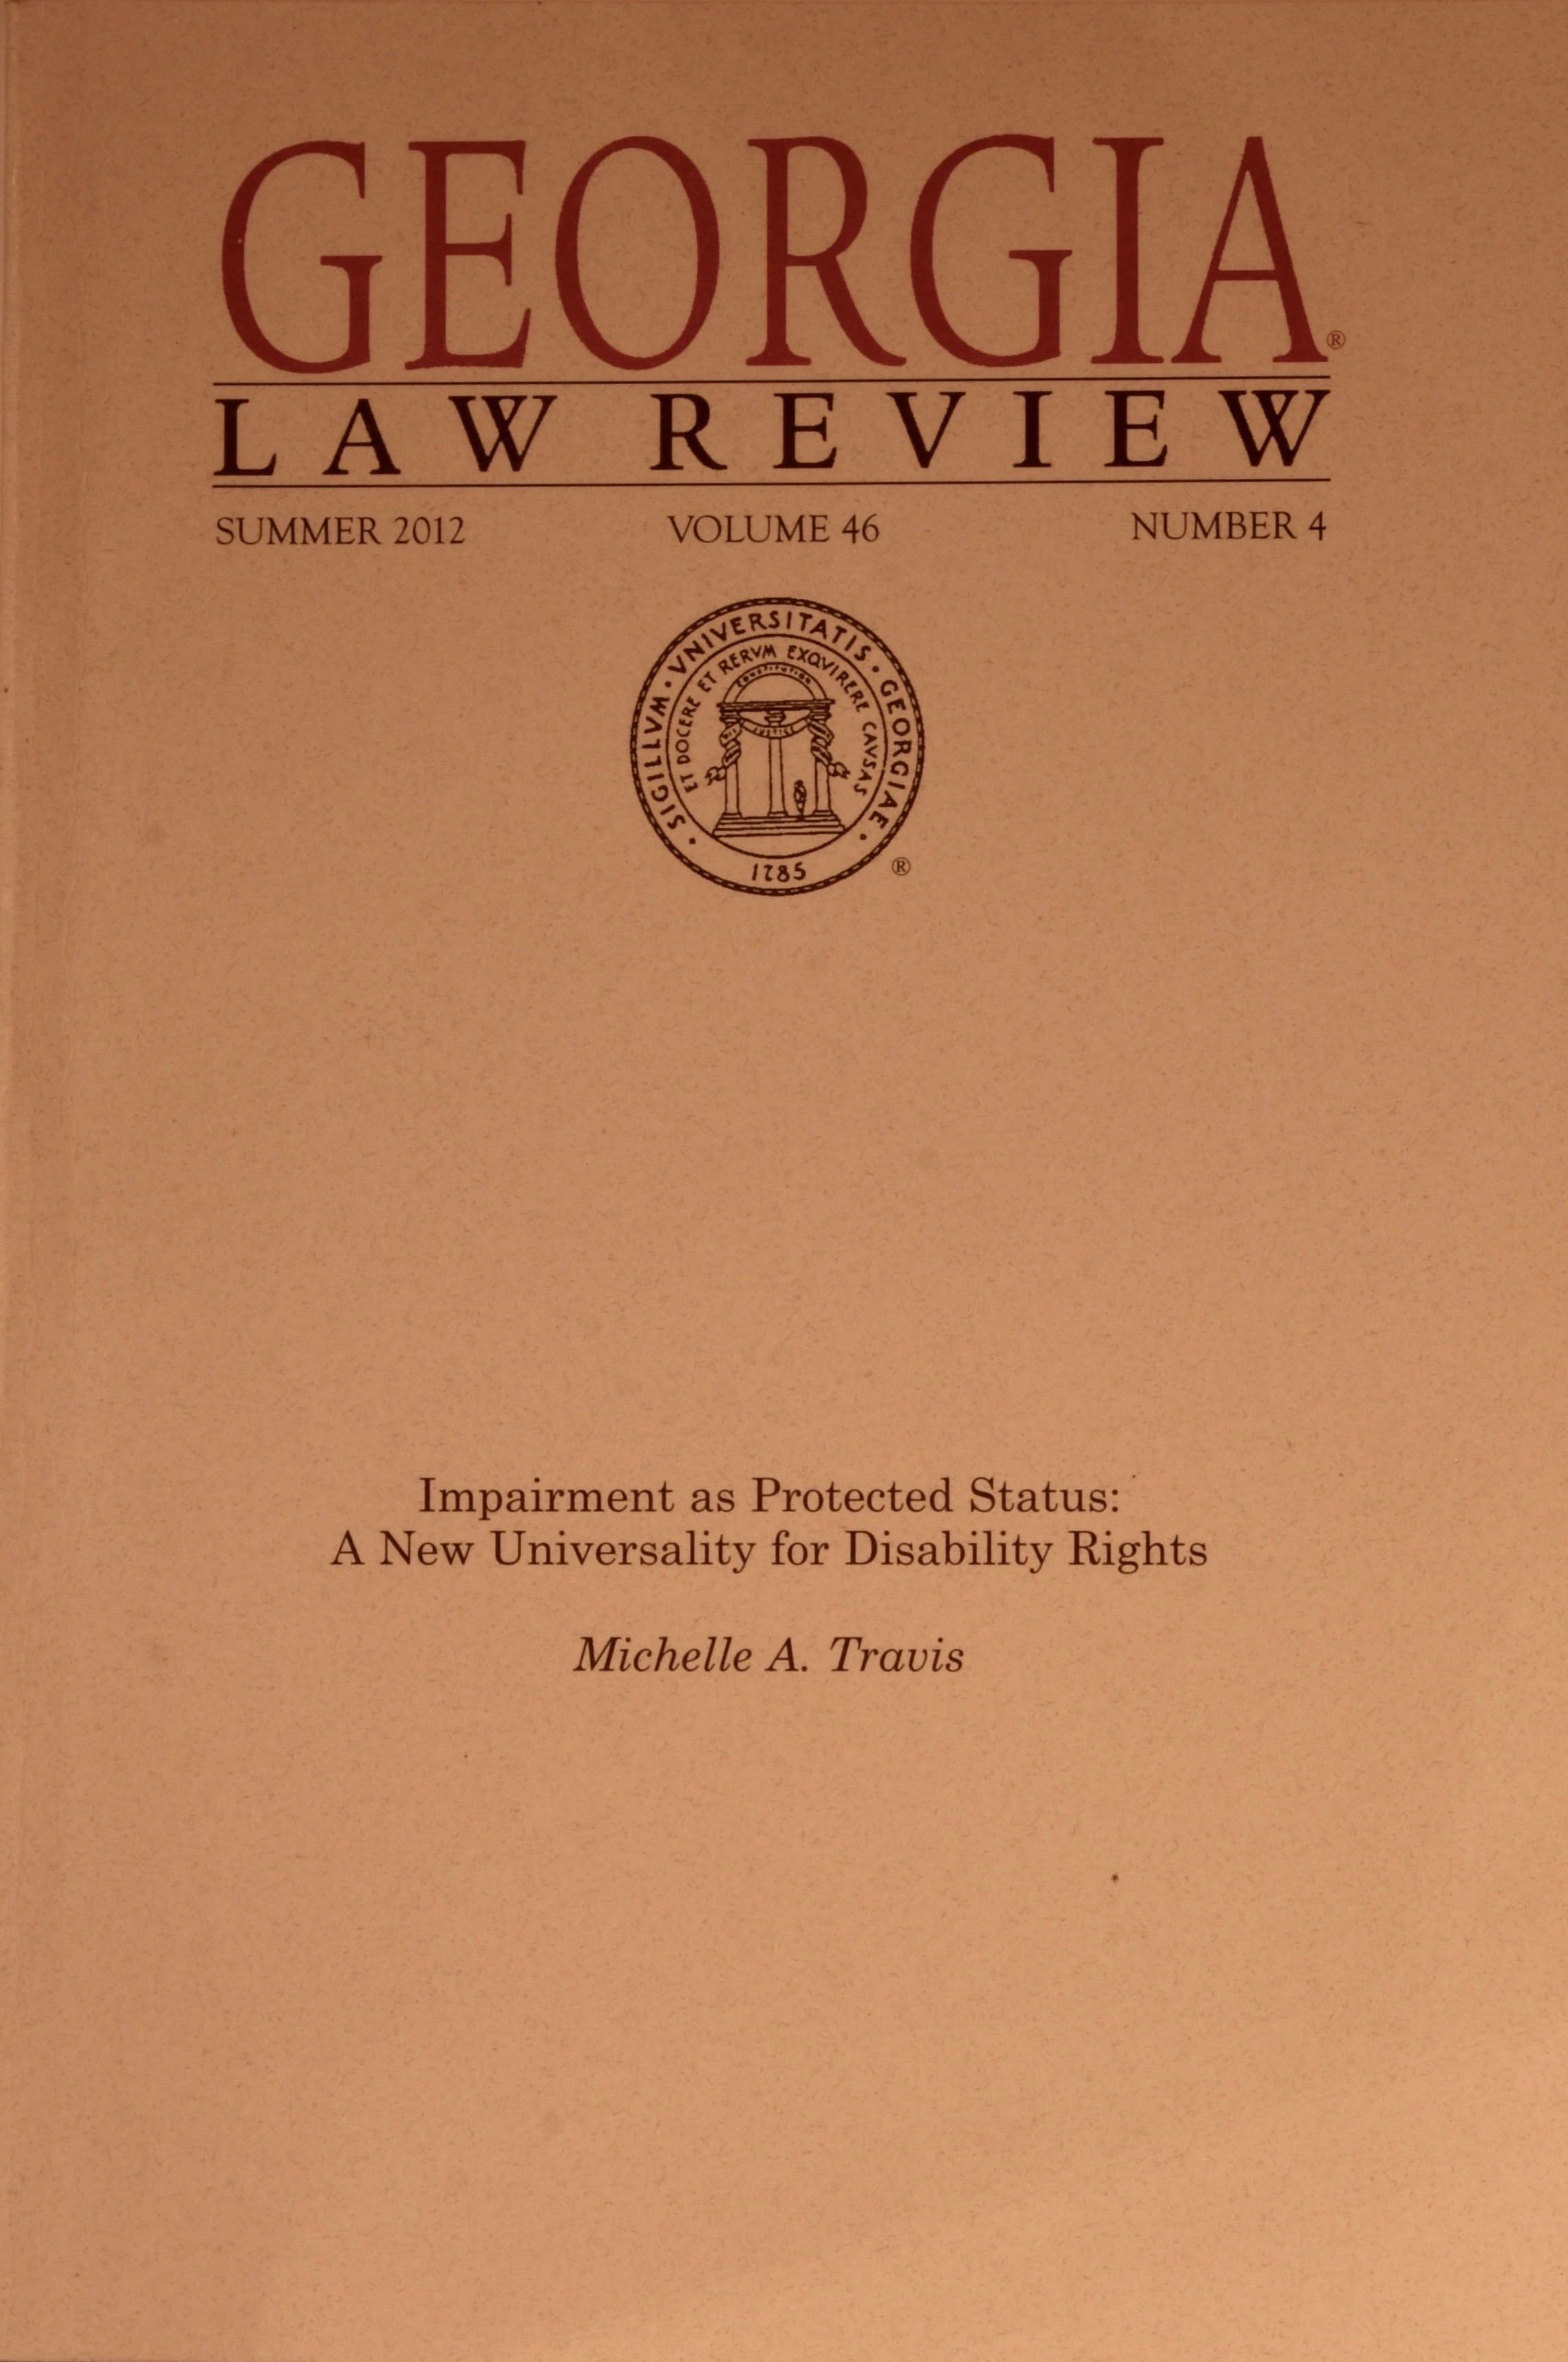 Georgia Law Review